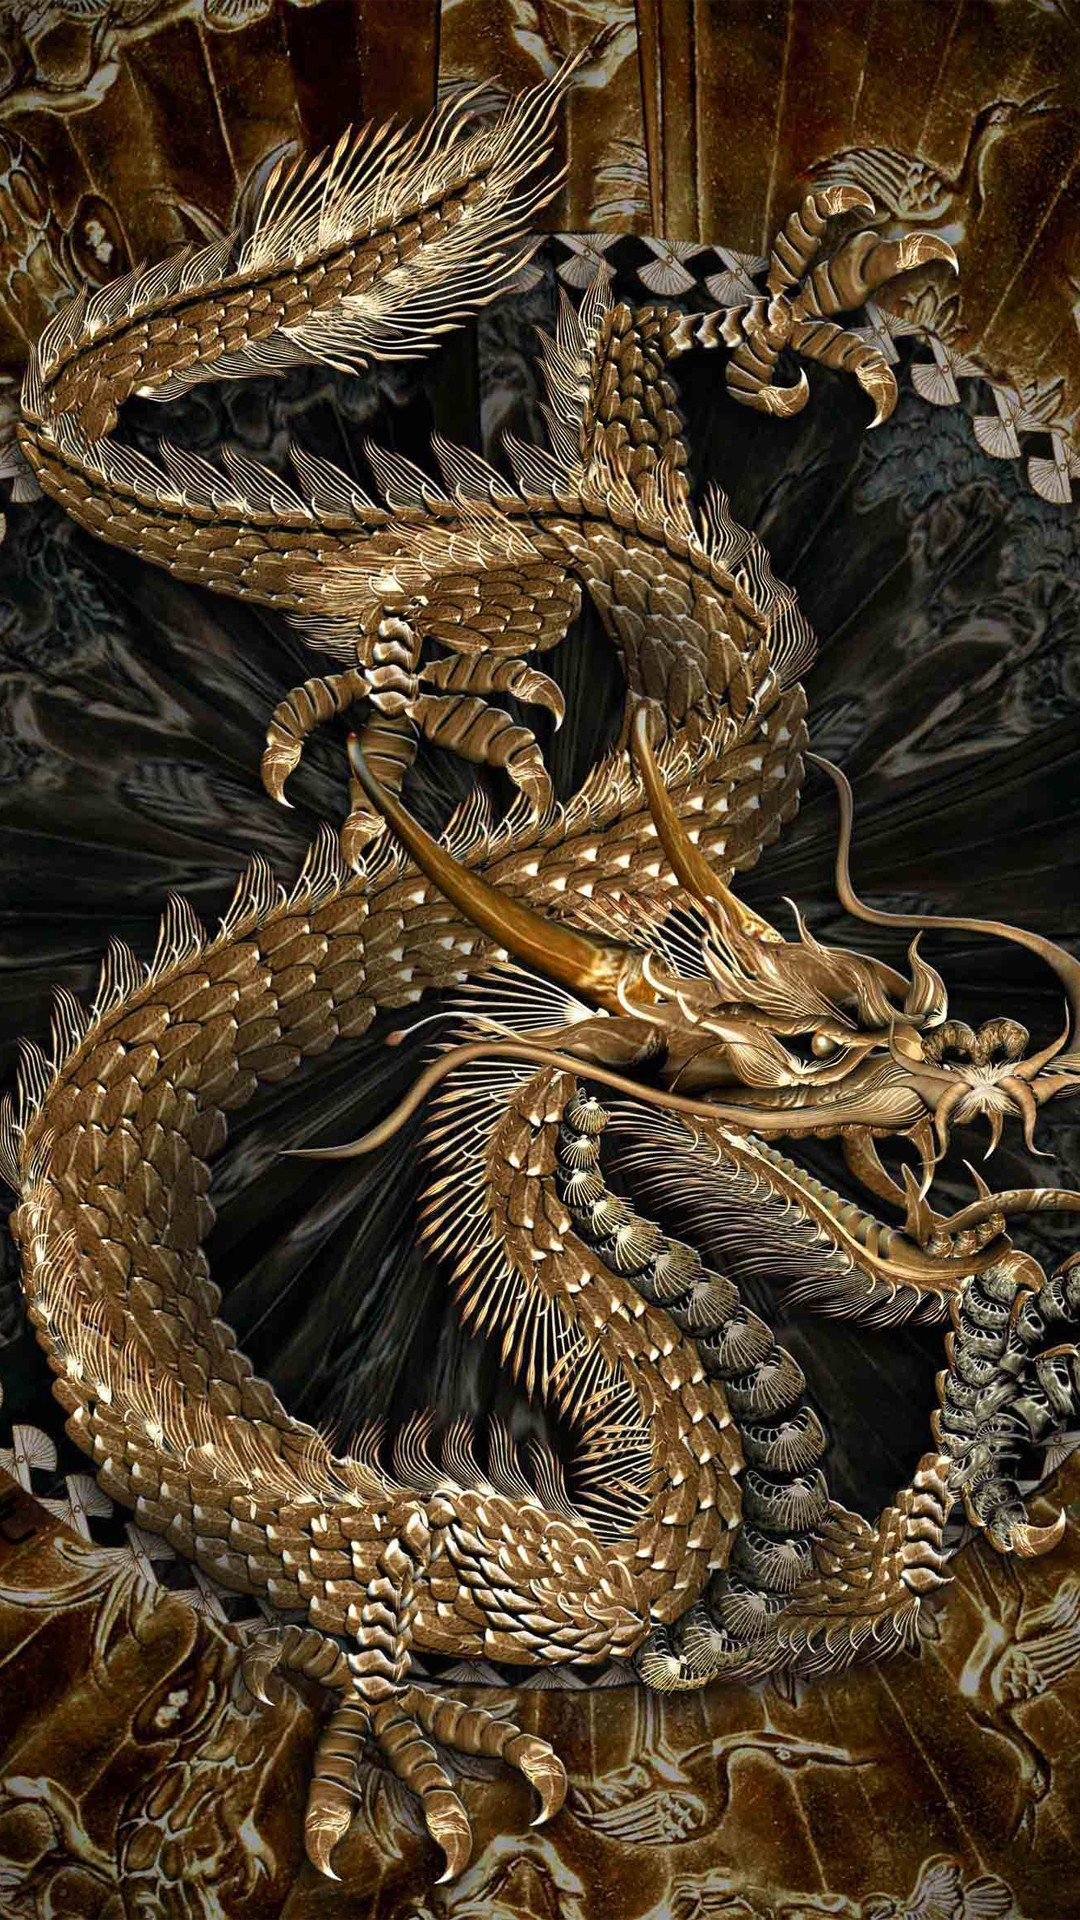 Dragon-Master-of-Mystical-Fire-is-the-oldest-and-wisest-spirit-animal-illuminating-collectiveâ€-wallpaper-wp3605209